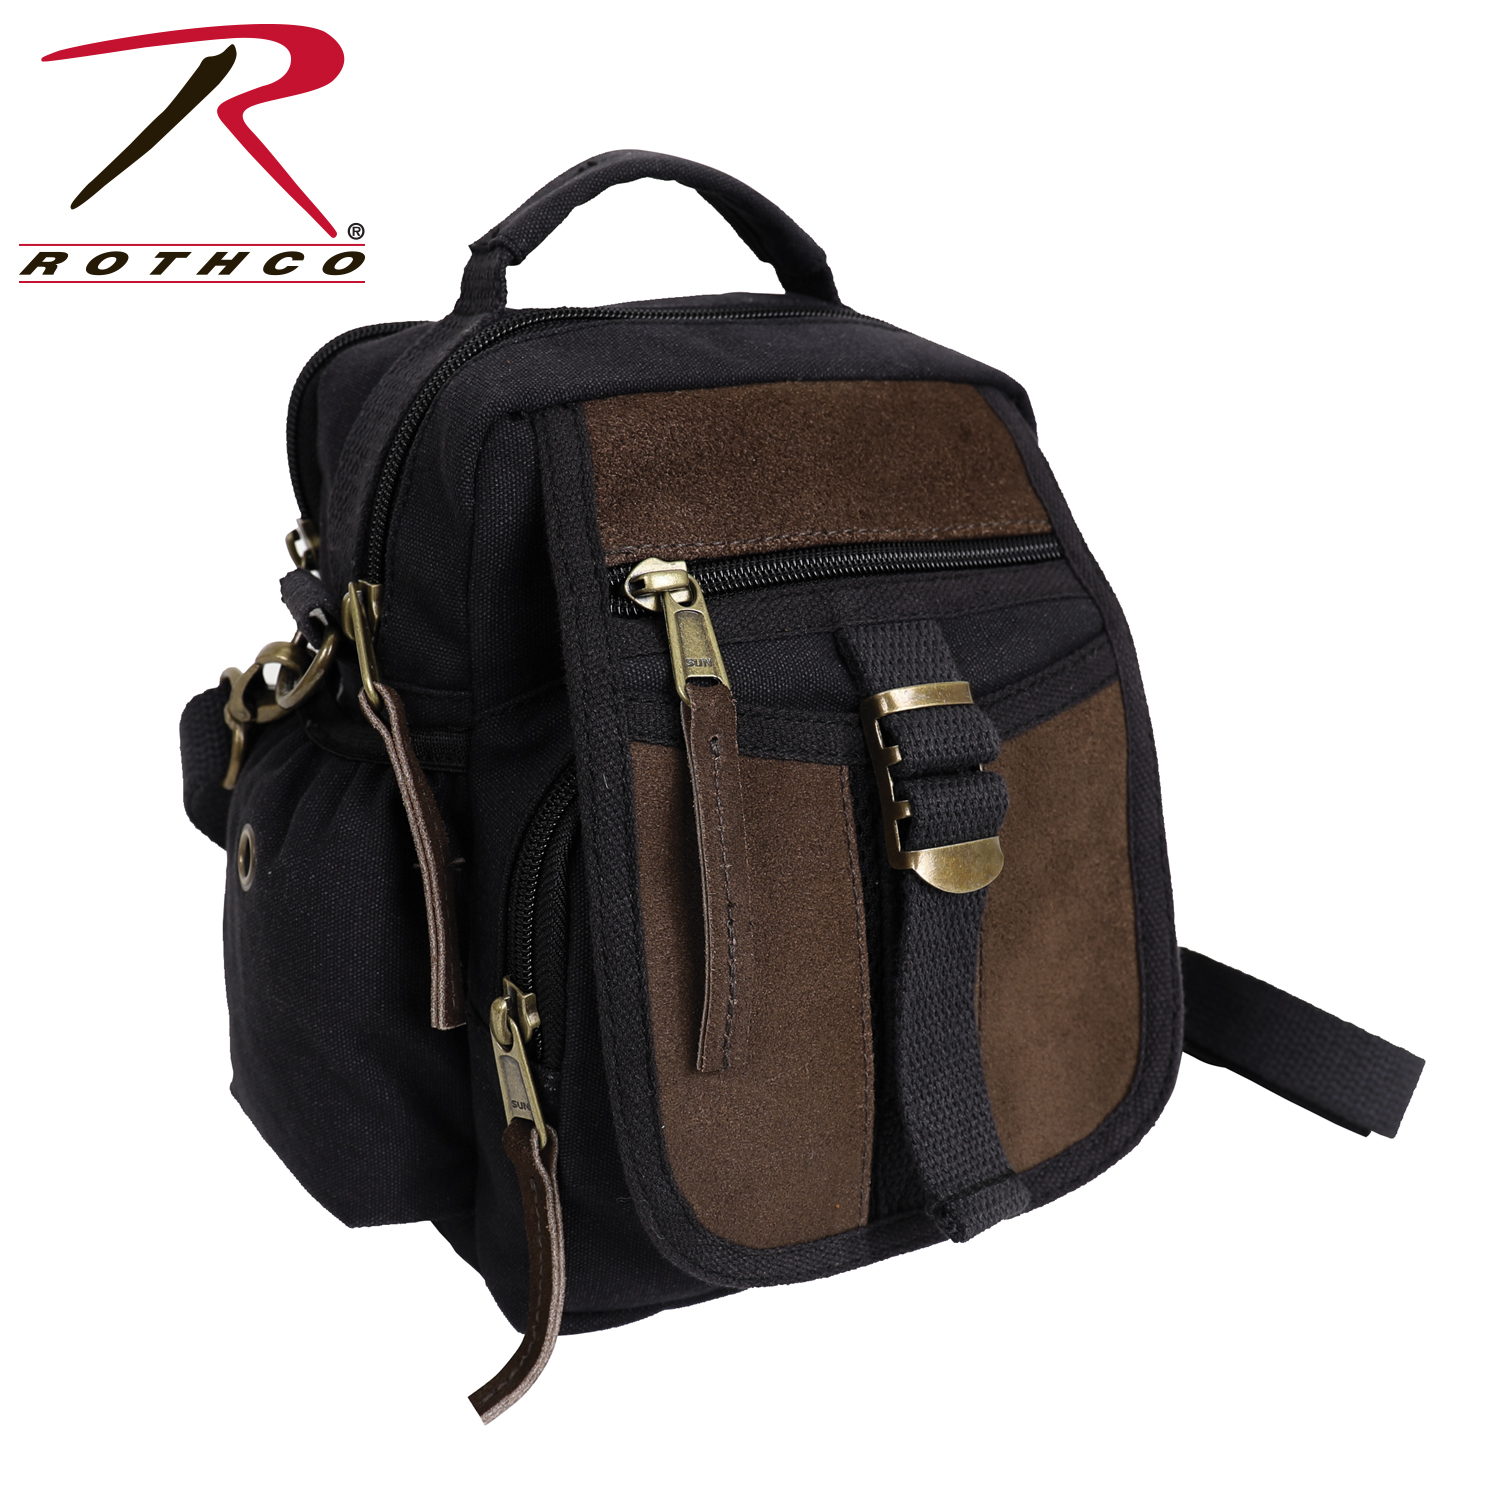 travel,leather,bag,shoulder,canvas